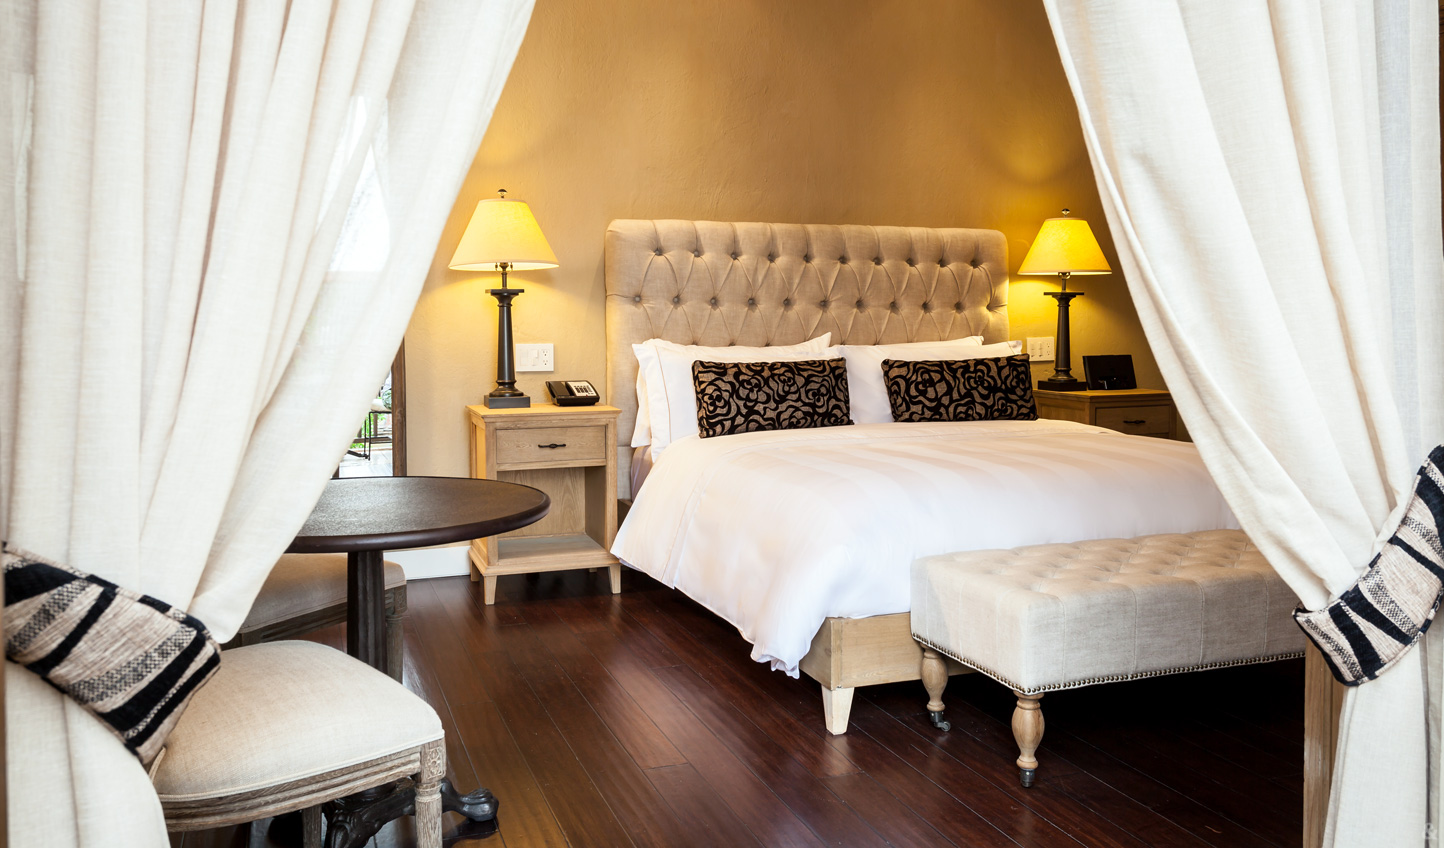 Step into your luxurious bolthole at the Bastion